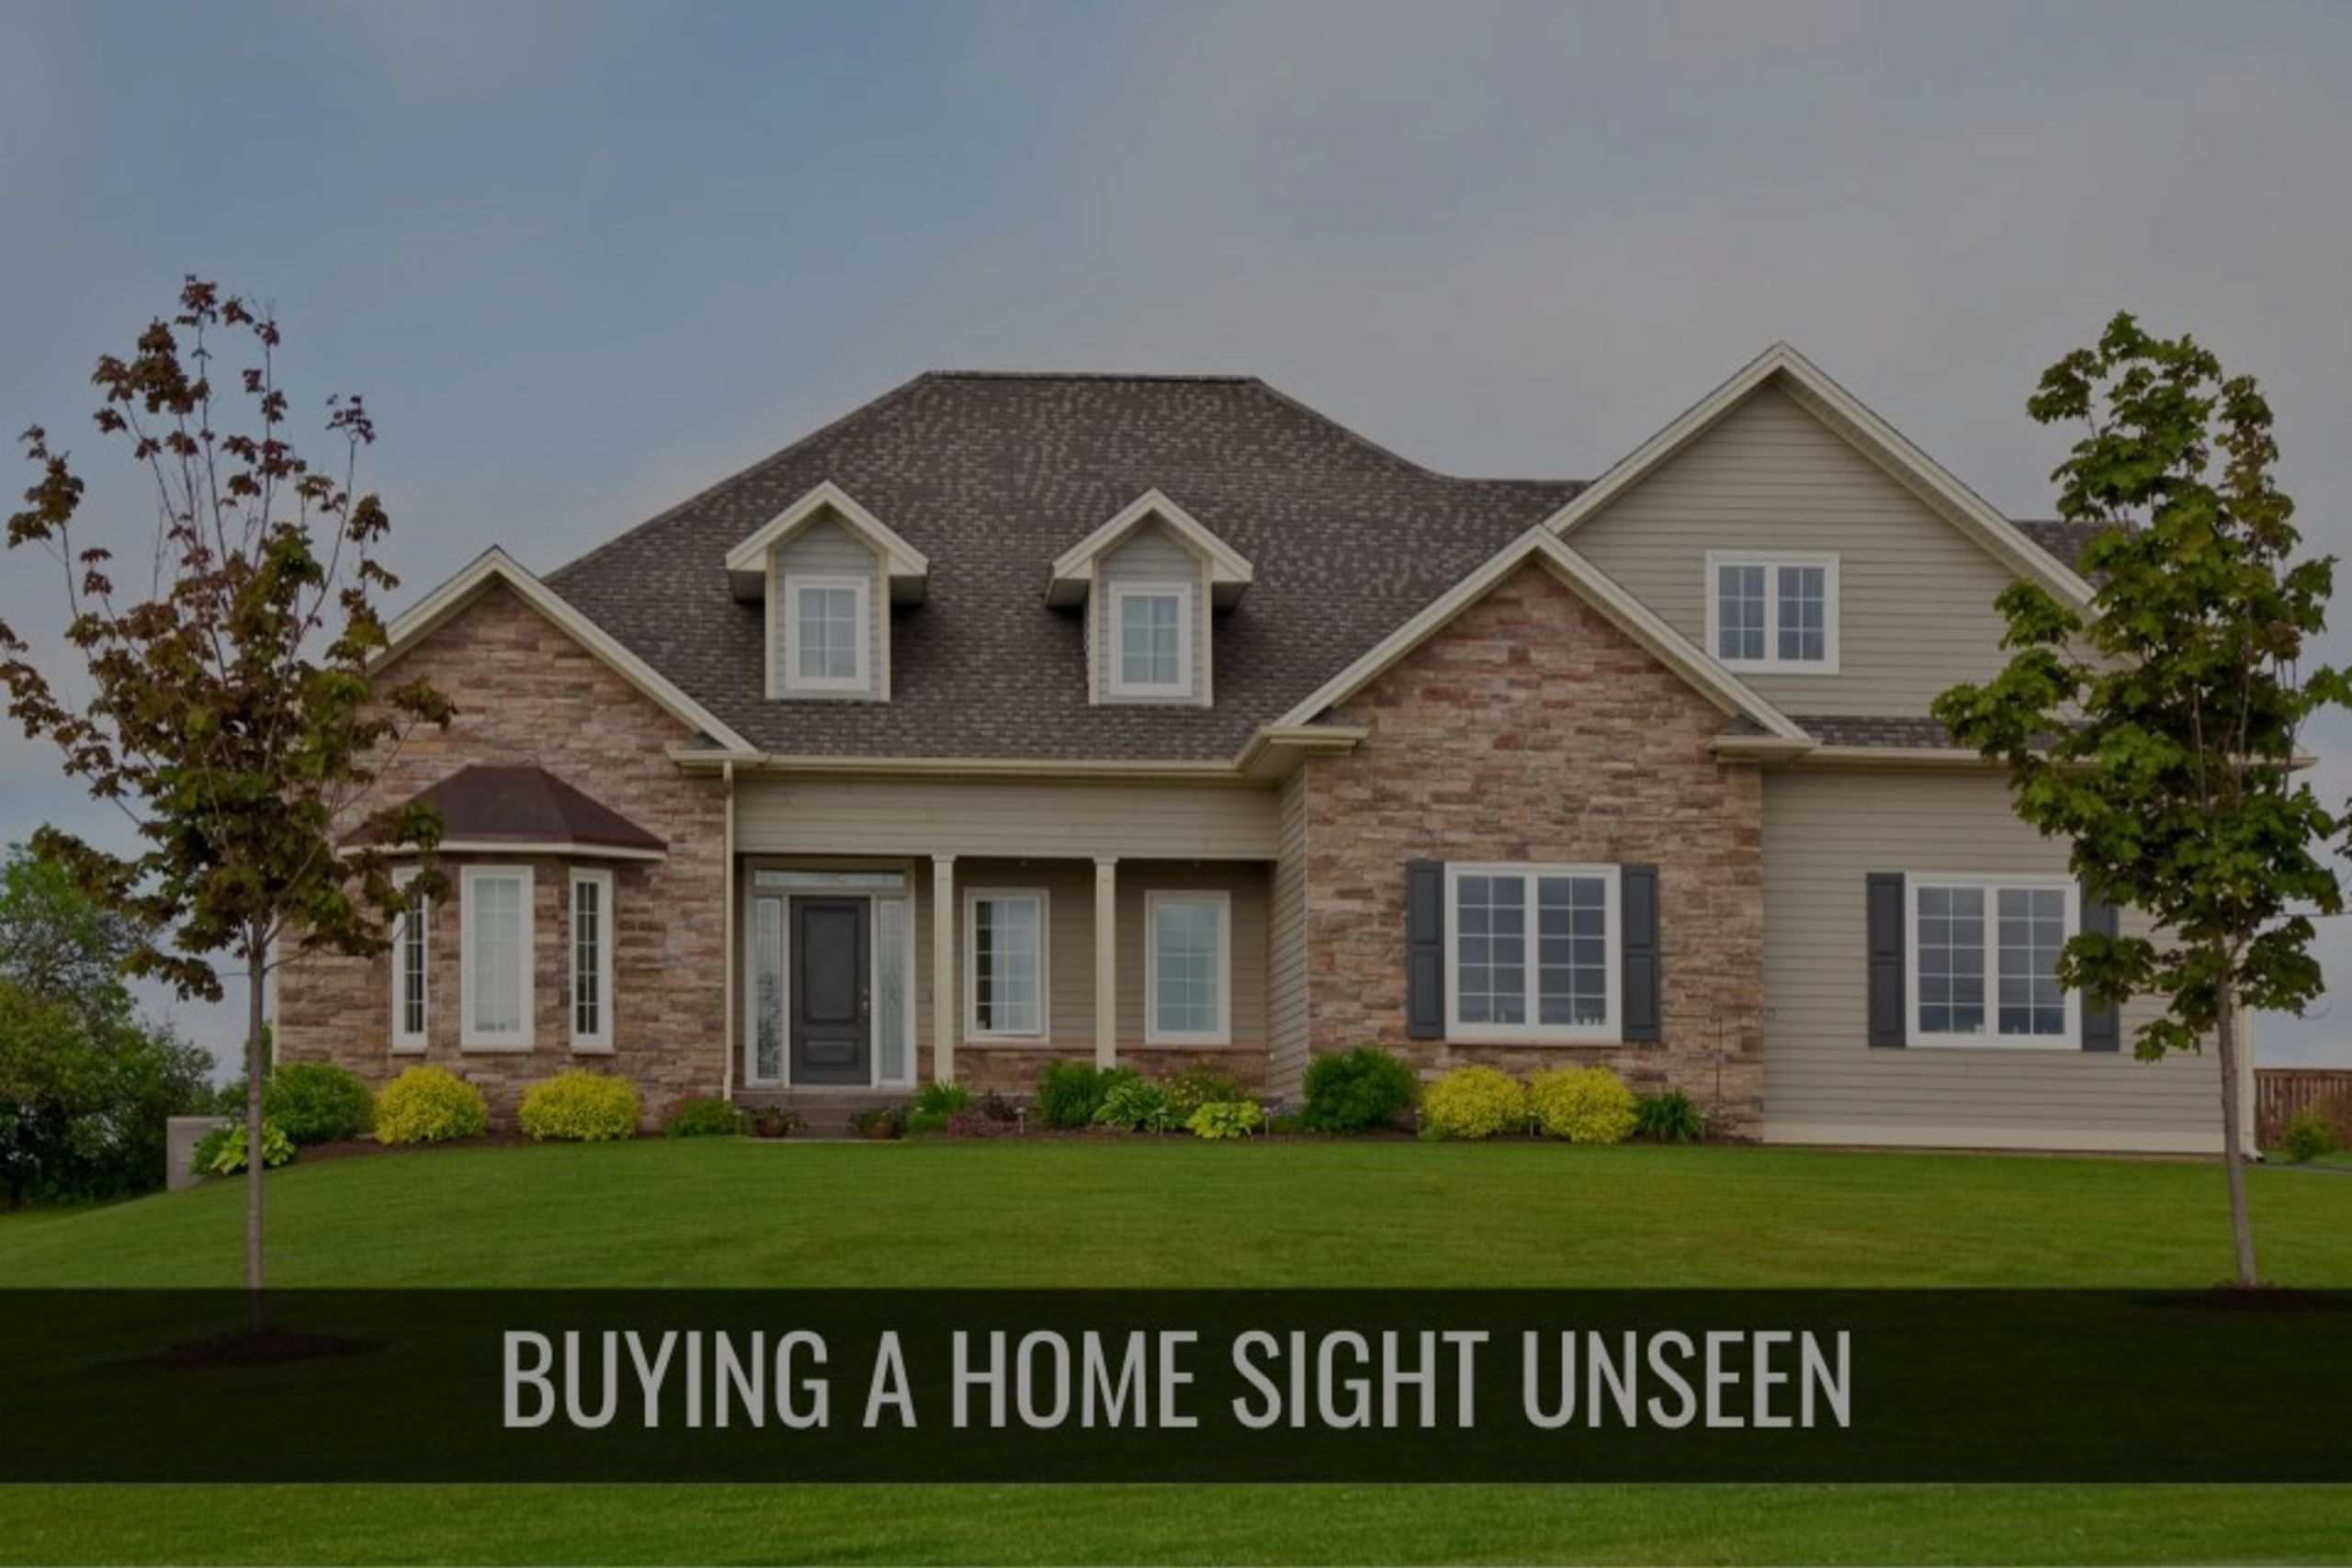 Tips for Buying a Home Unseen in Charleston